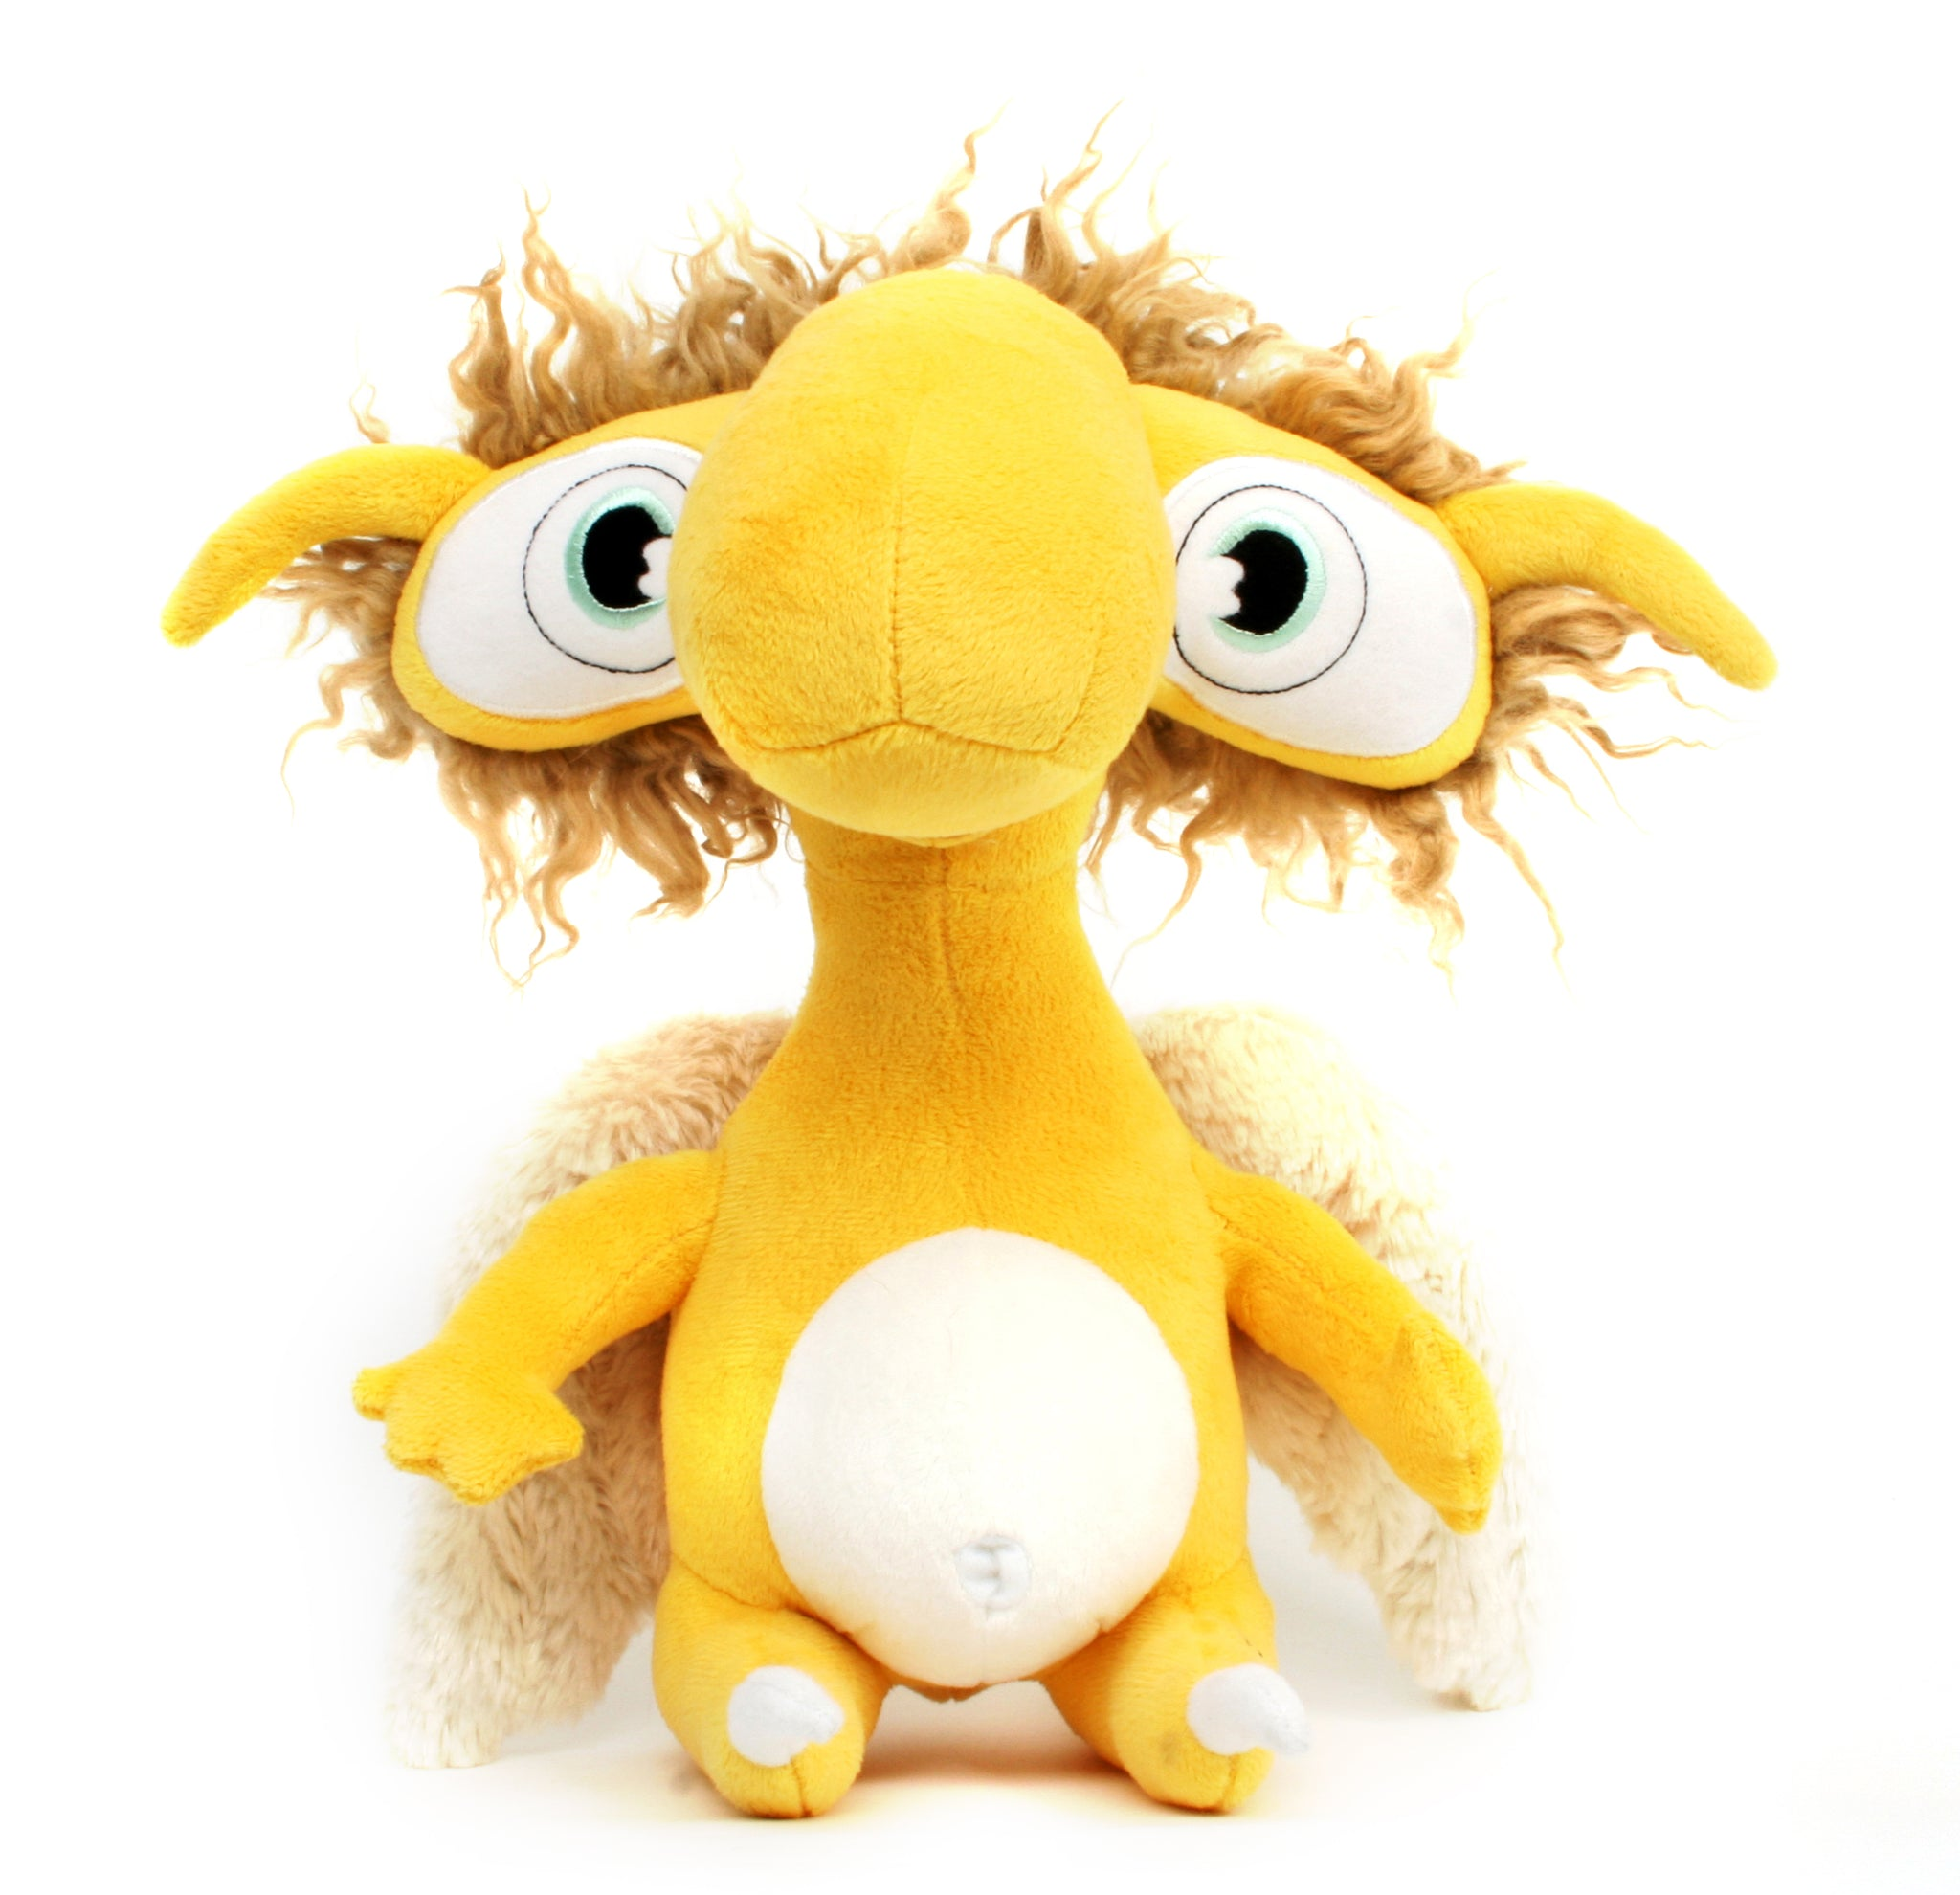 Rue - The Monster of Insecurity - WorryWoo Plush Toy